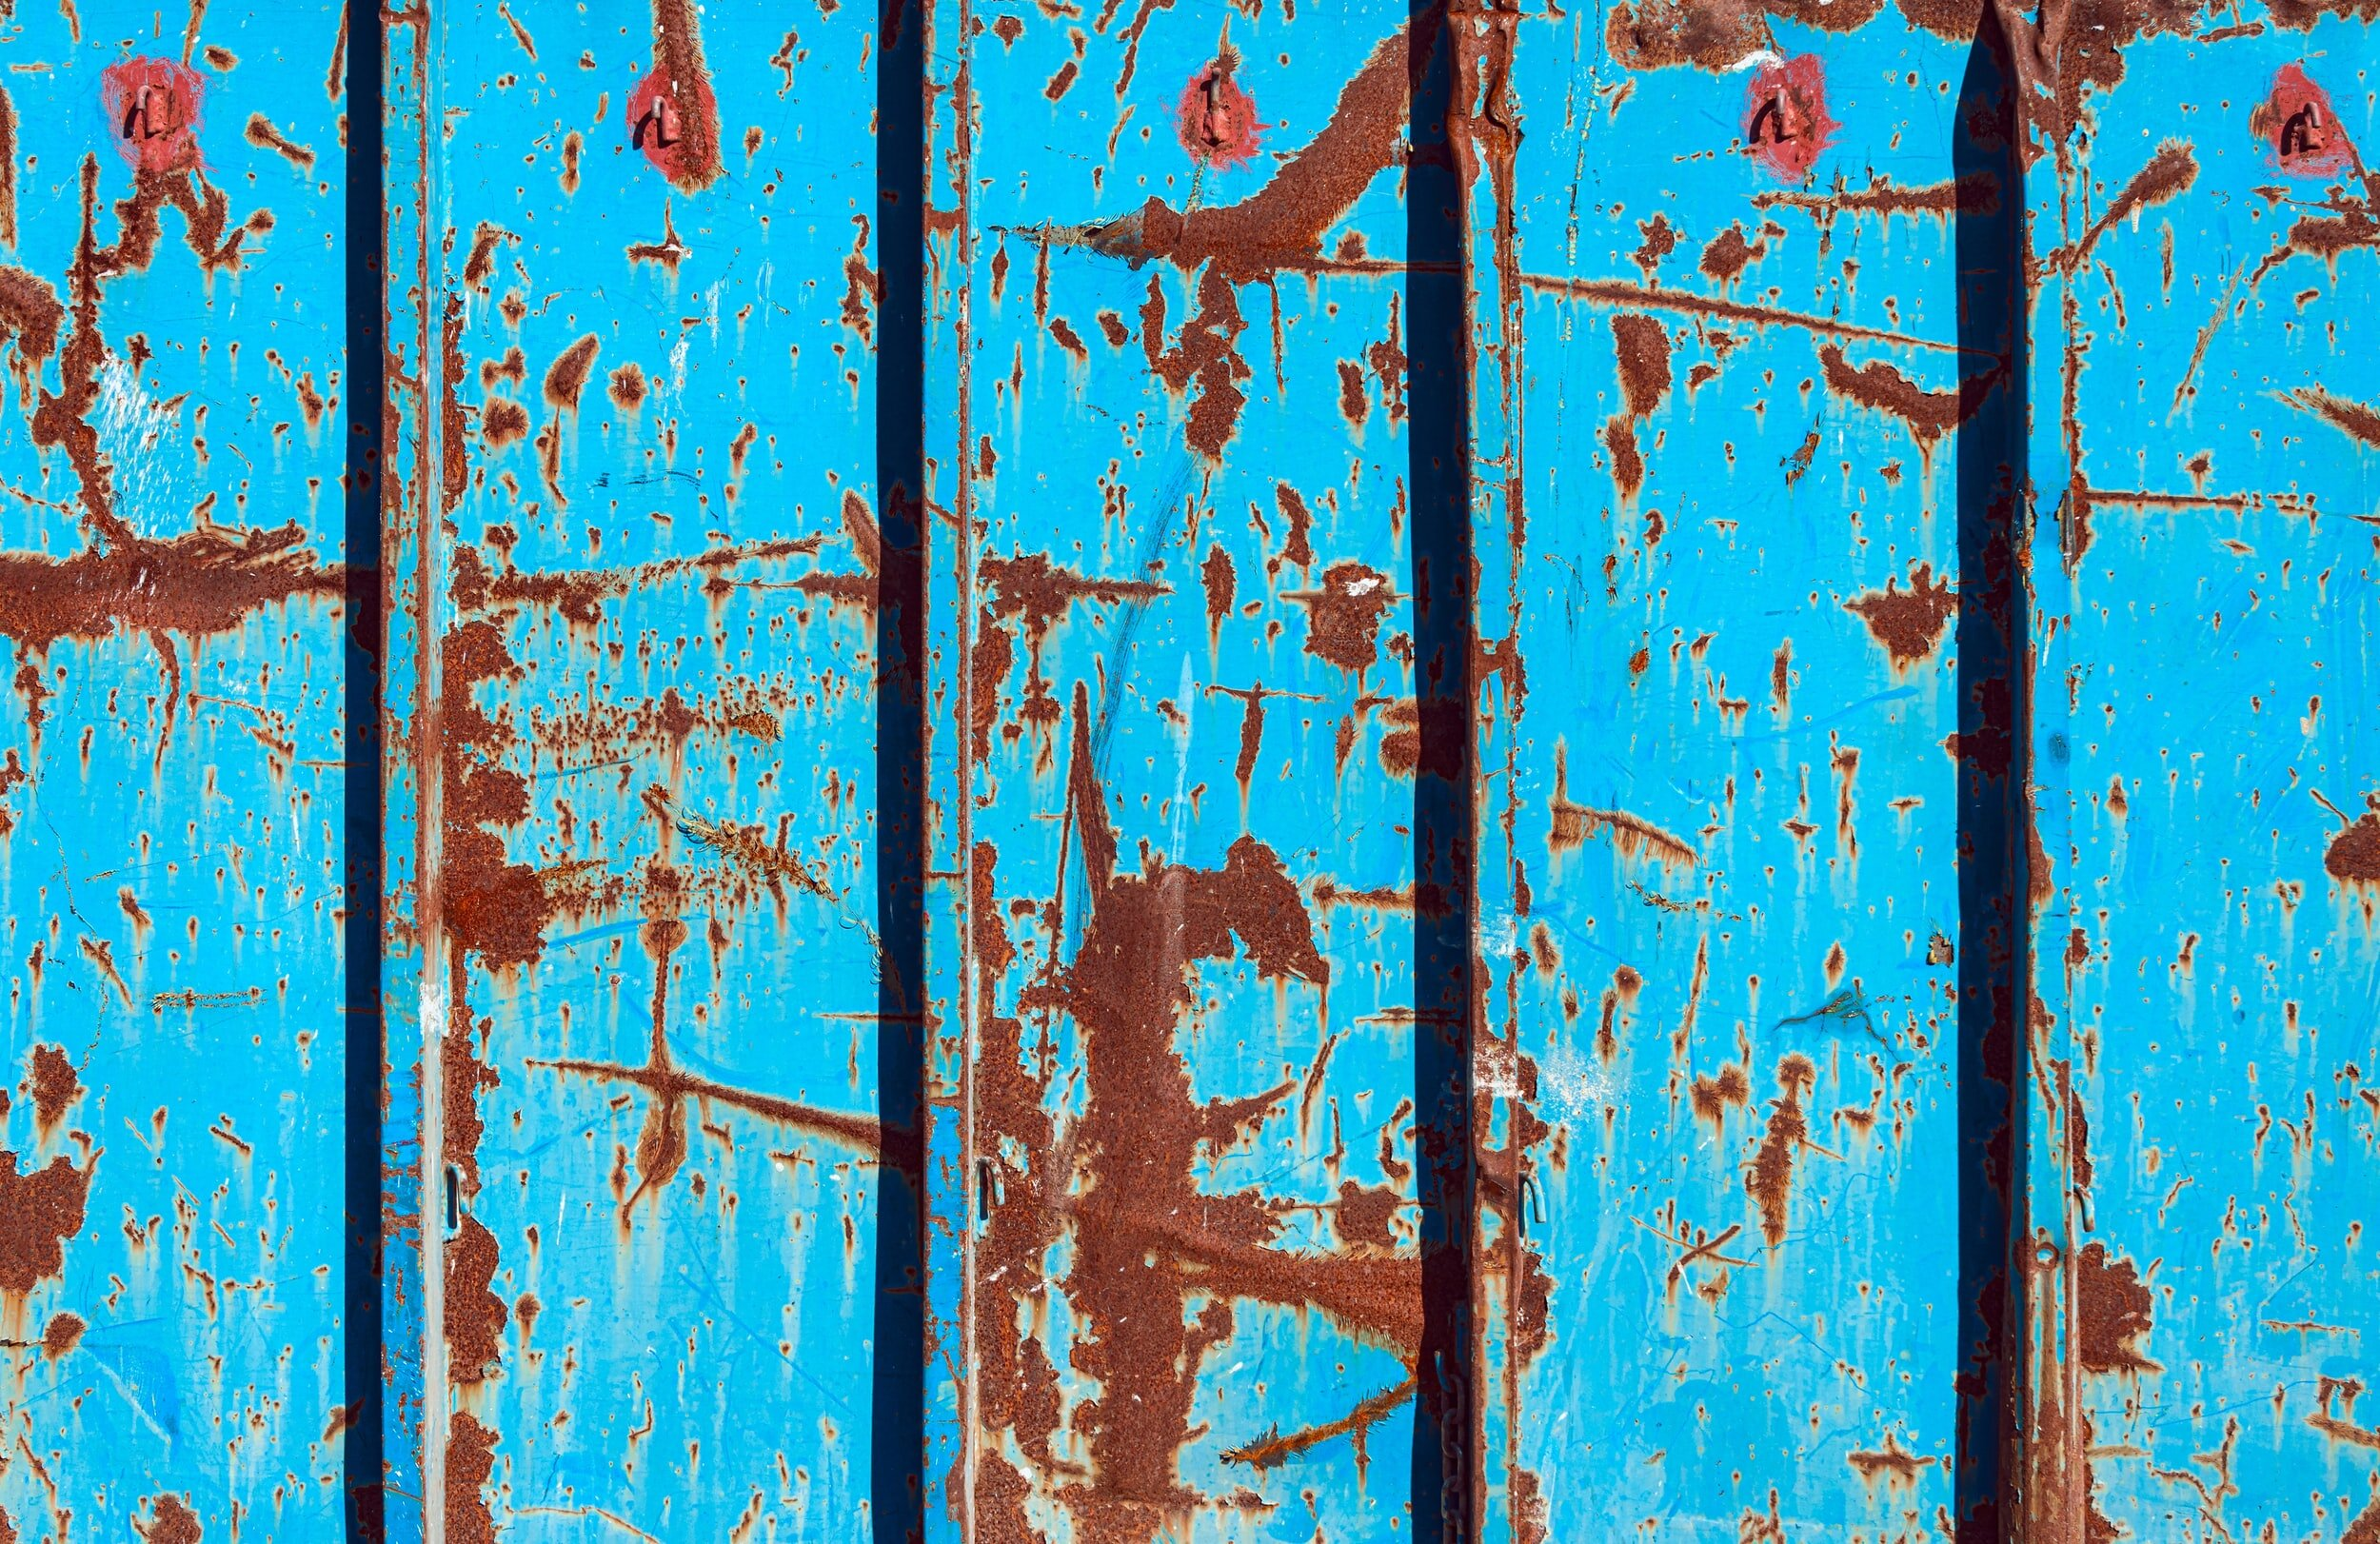 Rust is not just what you find on nails or old fences. Rust is the name of a programming language worth learning.